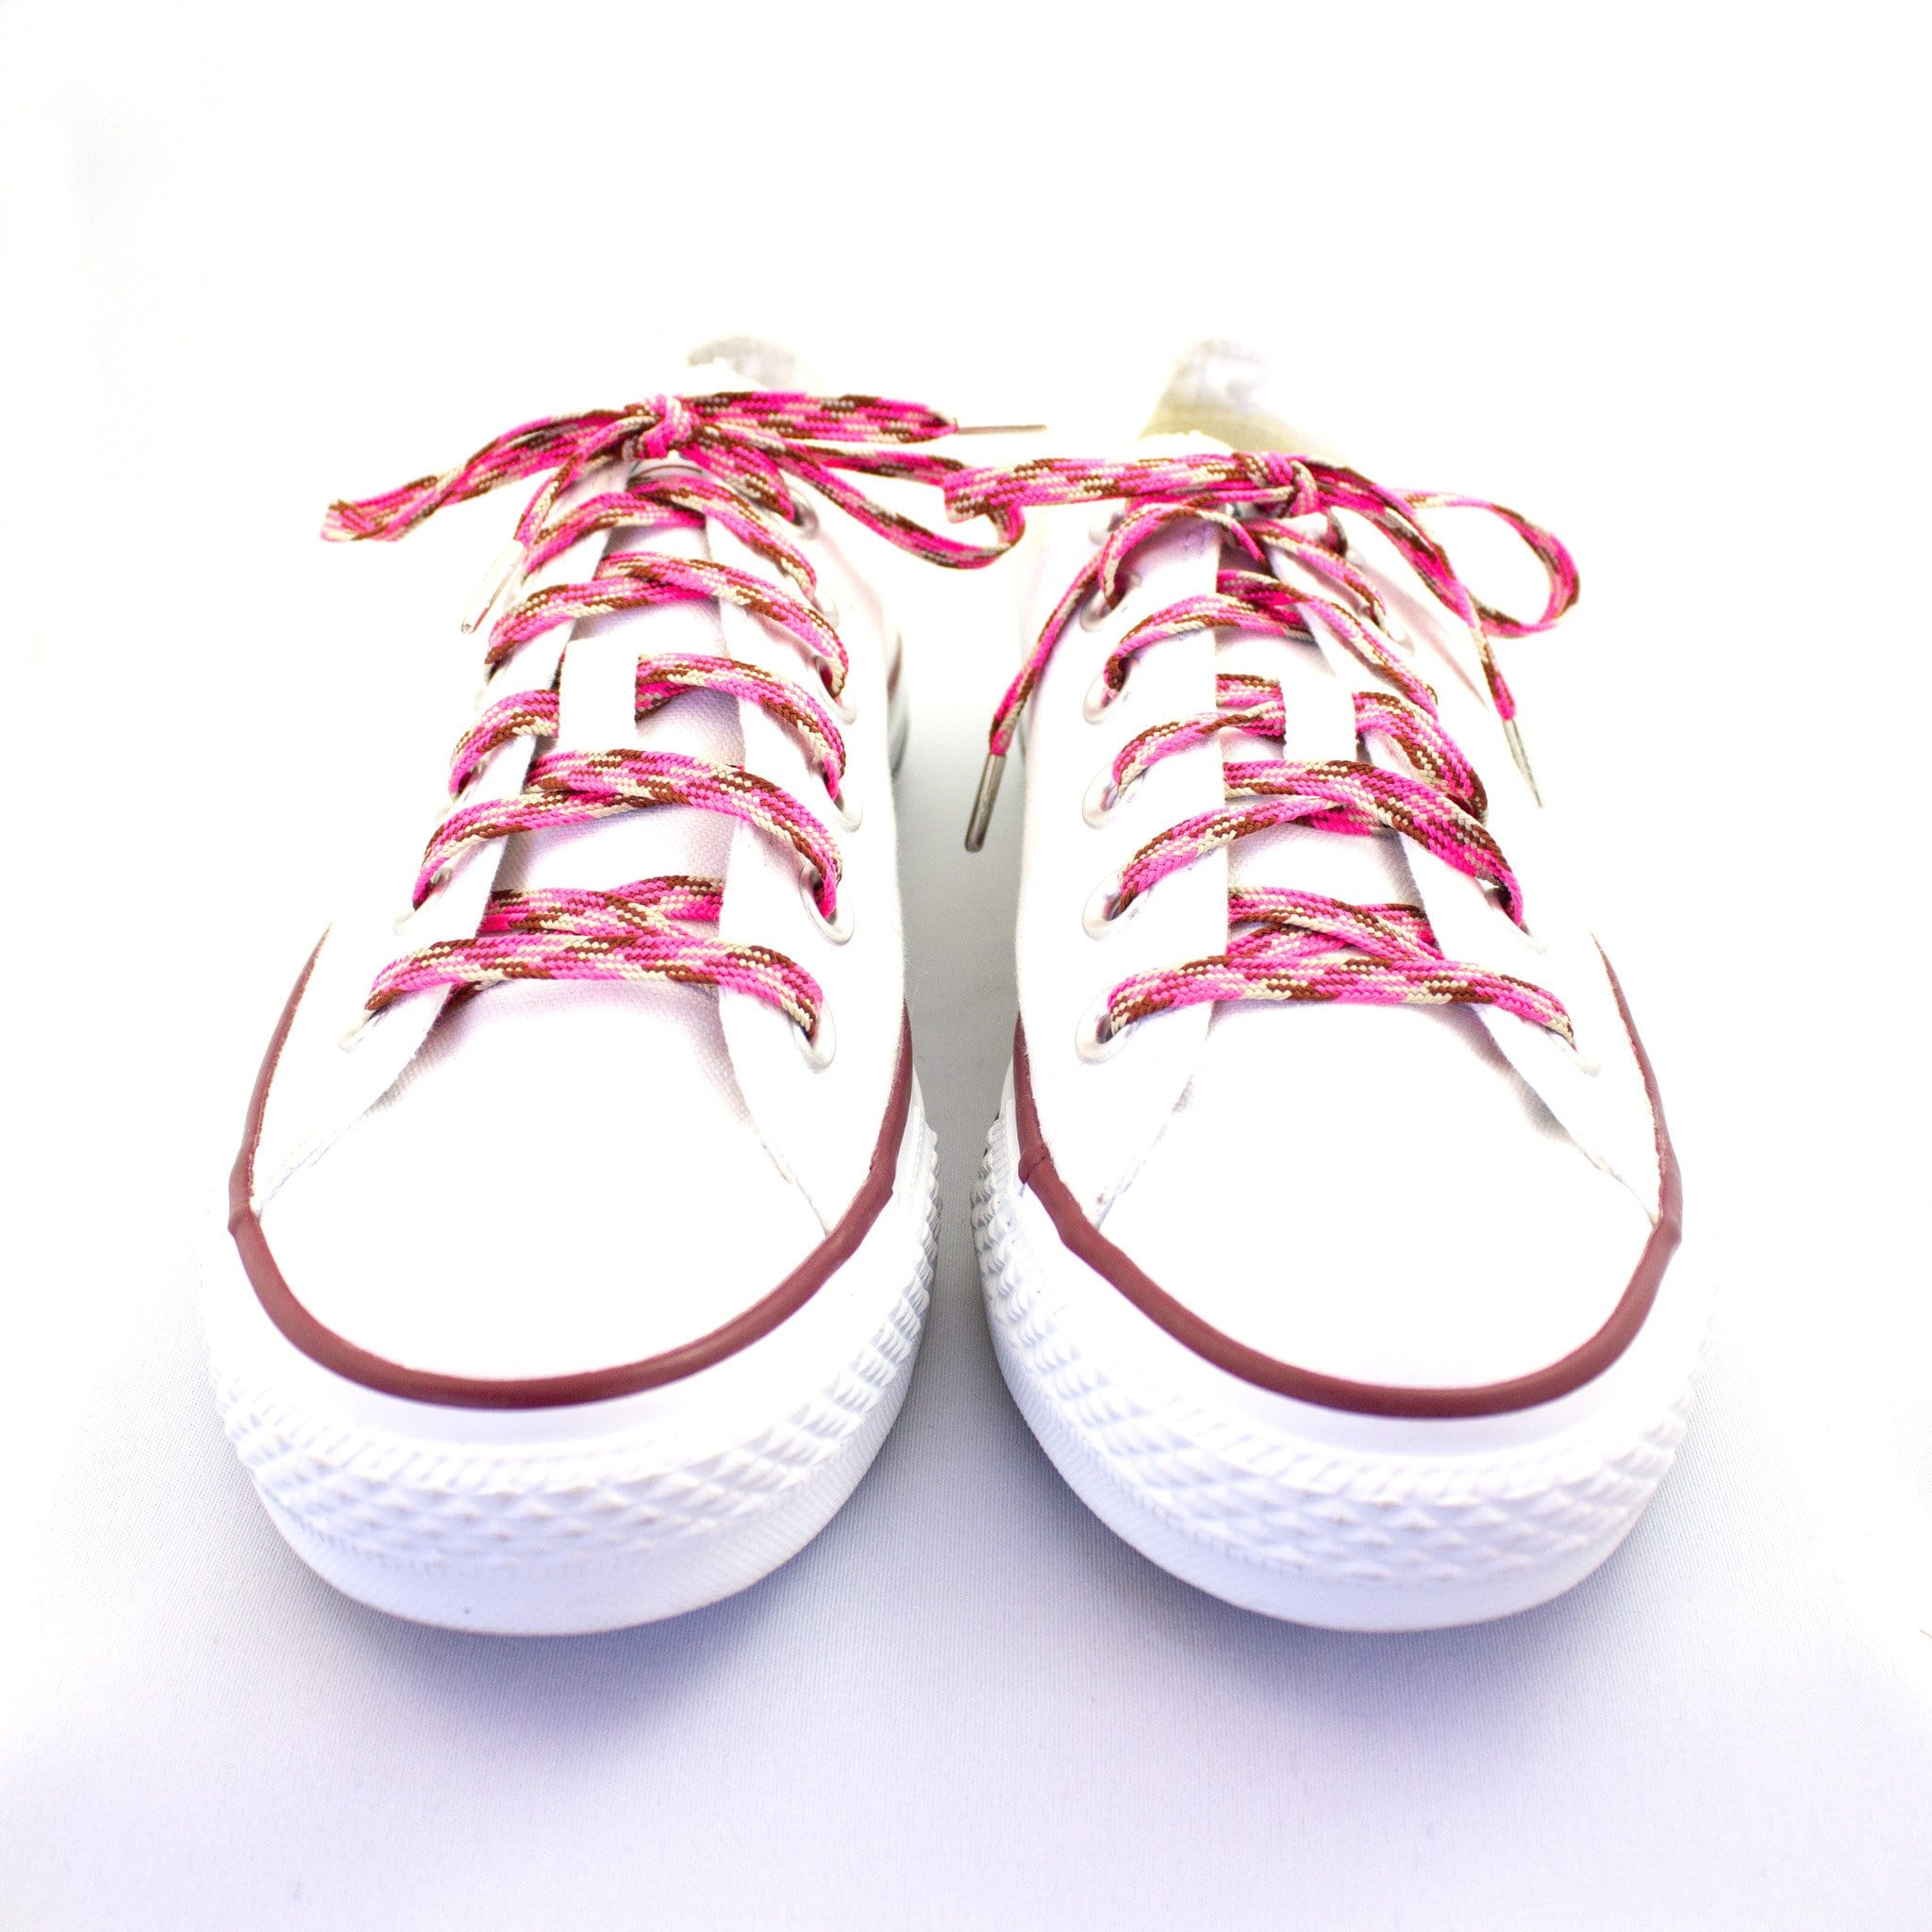 "Camo pink laces for sneakers (Length: 45""/114cm) - Stolen Riches"